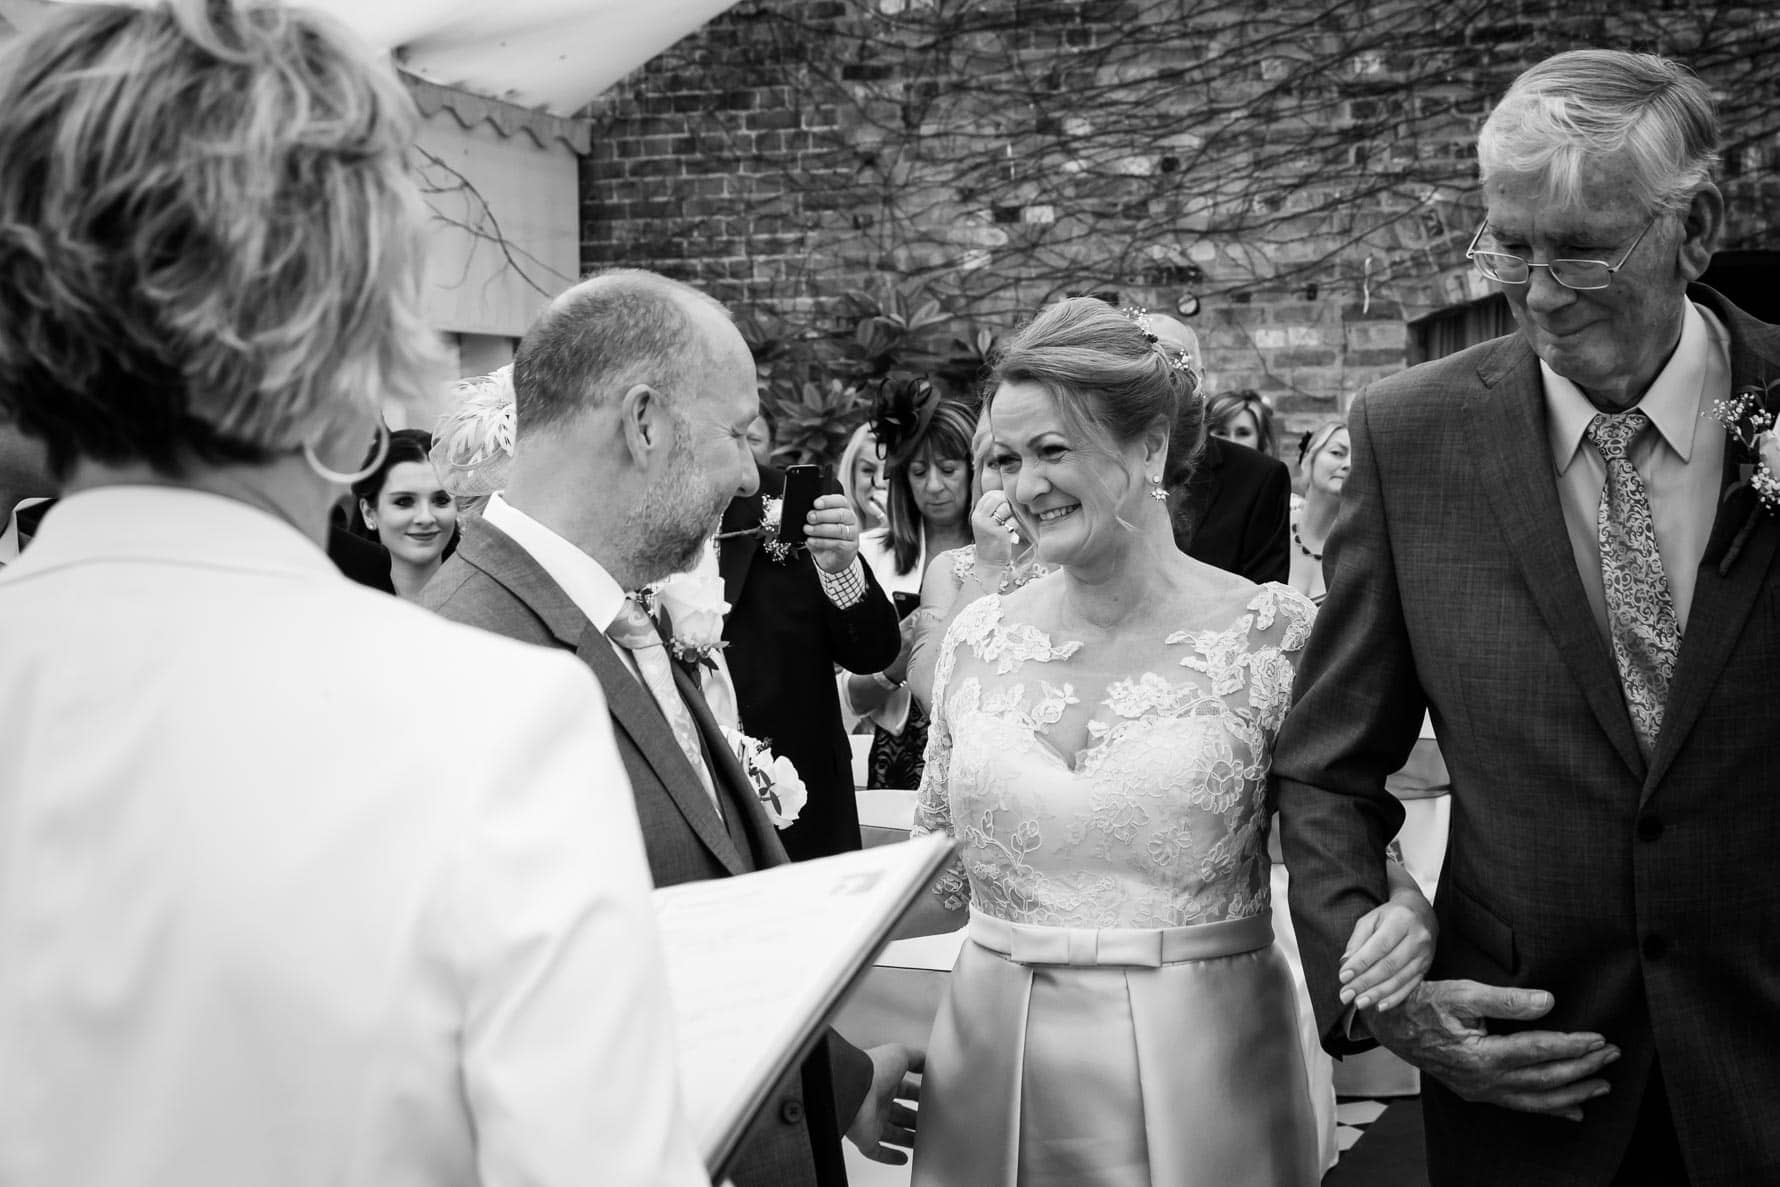 The groom greets his bride at their Hertfordshire wedding at Hanbury Manor